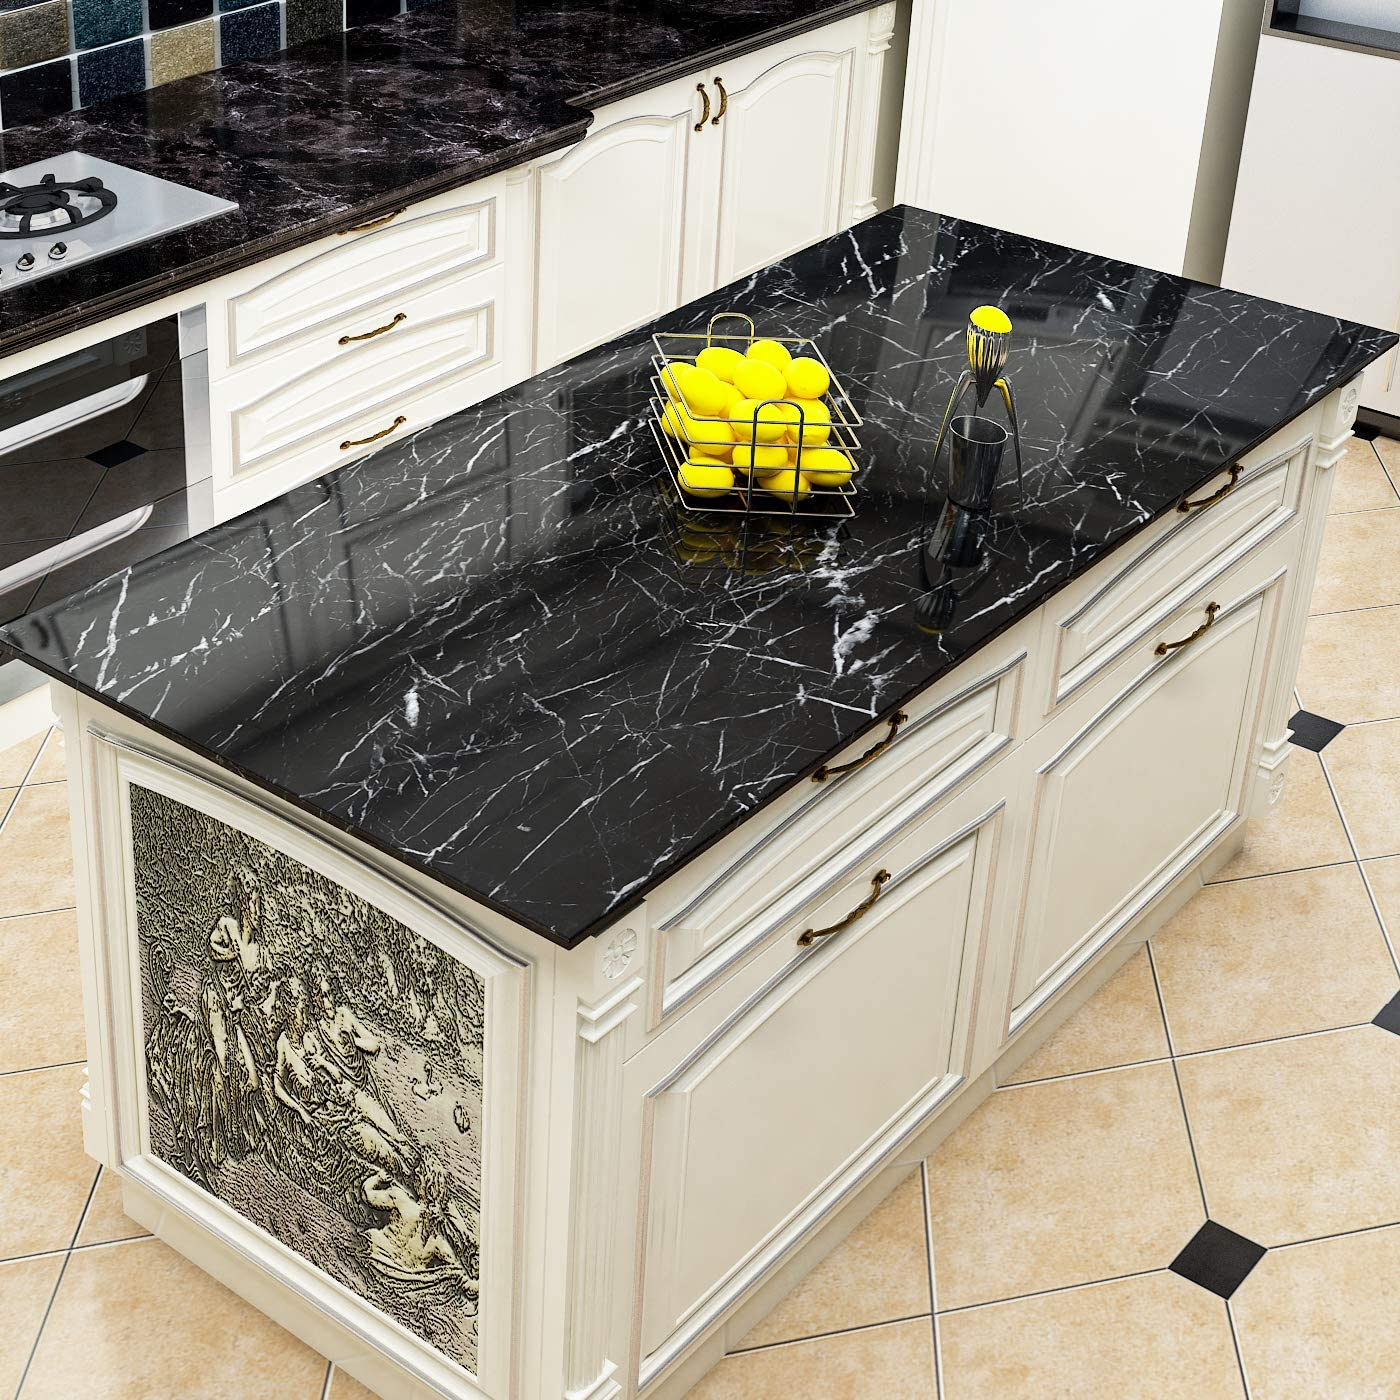 Yenhome Jazz Black Faux Marble Countertops Peel And Stick 24 X 196 Inch Removable Wallpaper For Kitchen Backsplash Peel And Stick Wallpaper Cabinets Shelf And Drawer Liner Self Adhesive Vinyl Film Amazon Co Uk